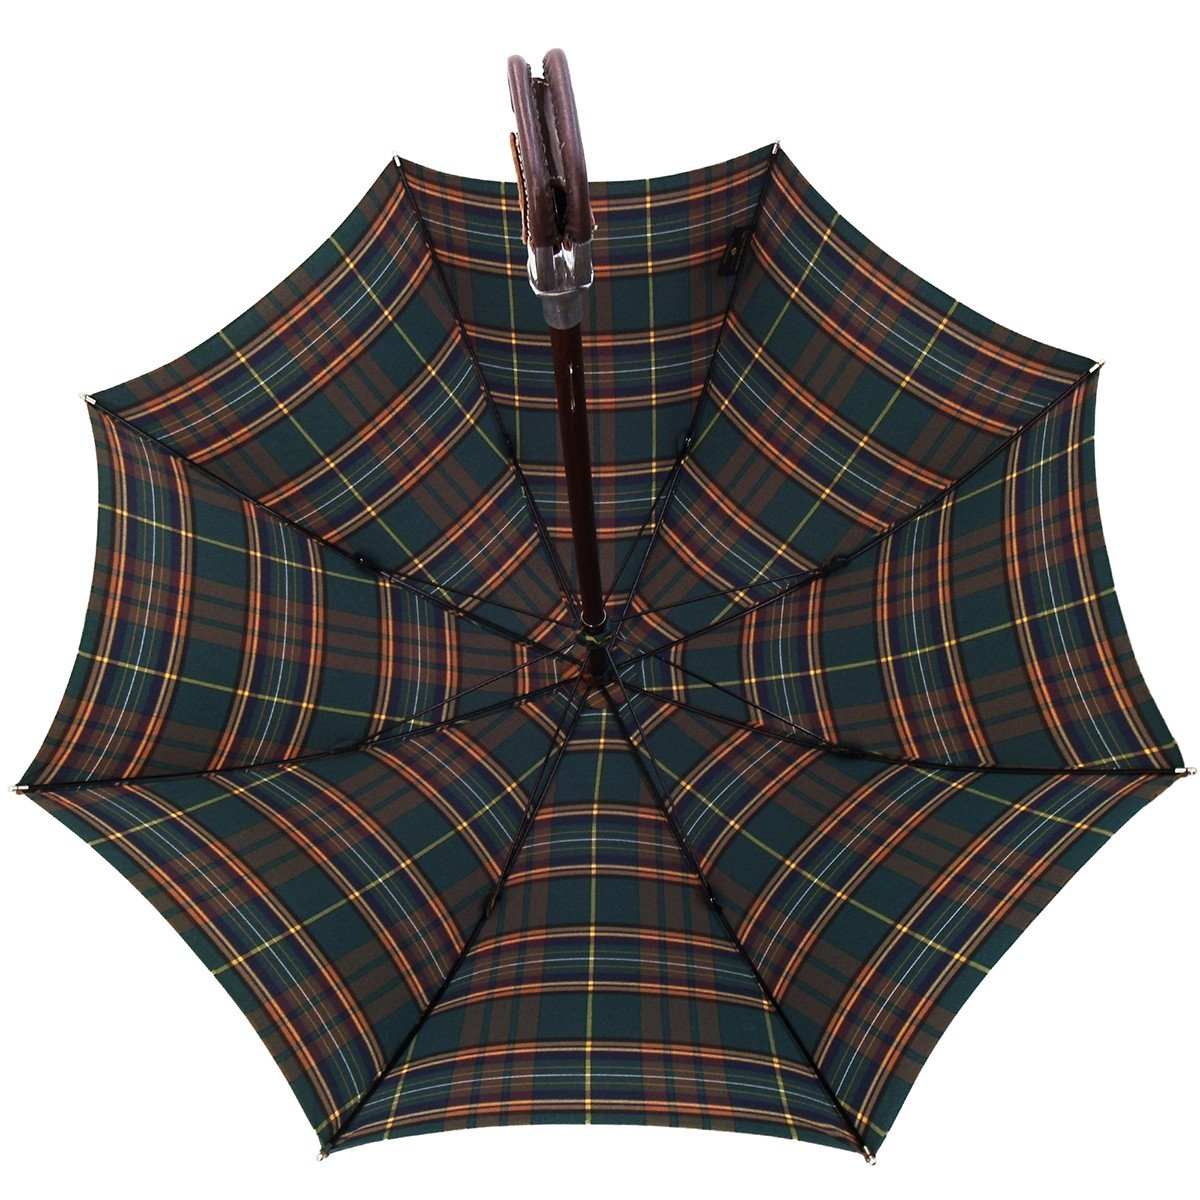 Handmade Leather Seat Umbrella- Green & Brown Tartan - il-marchesato